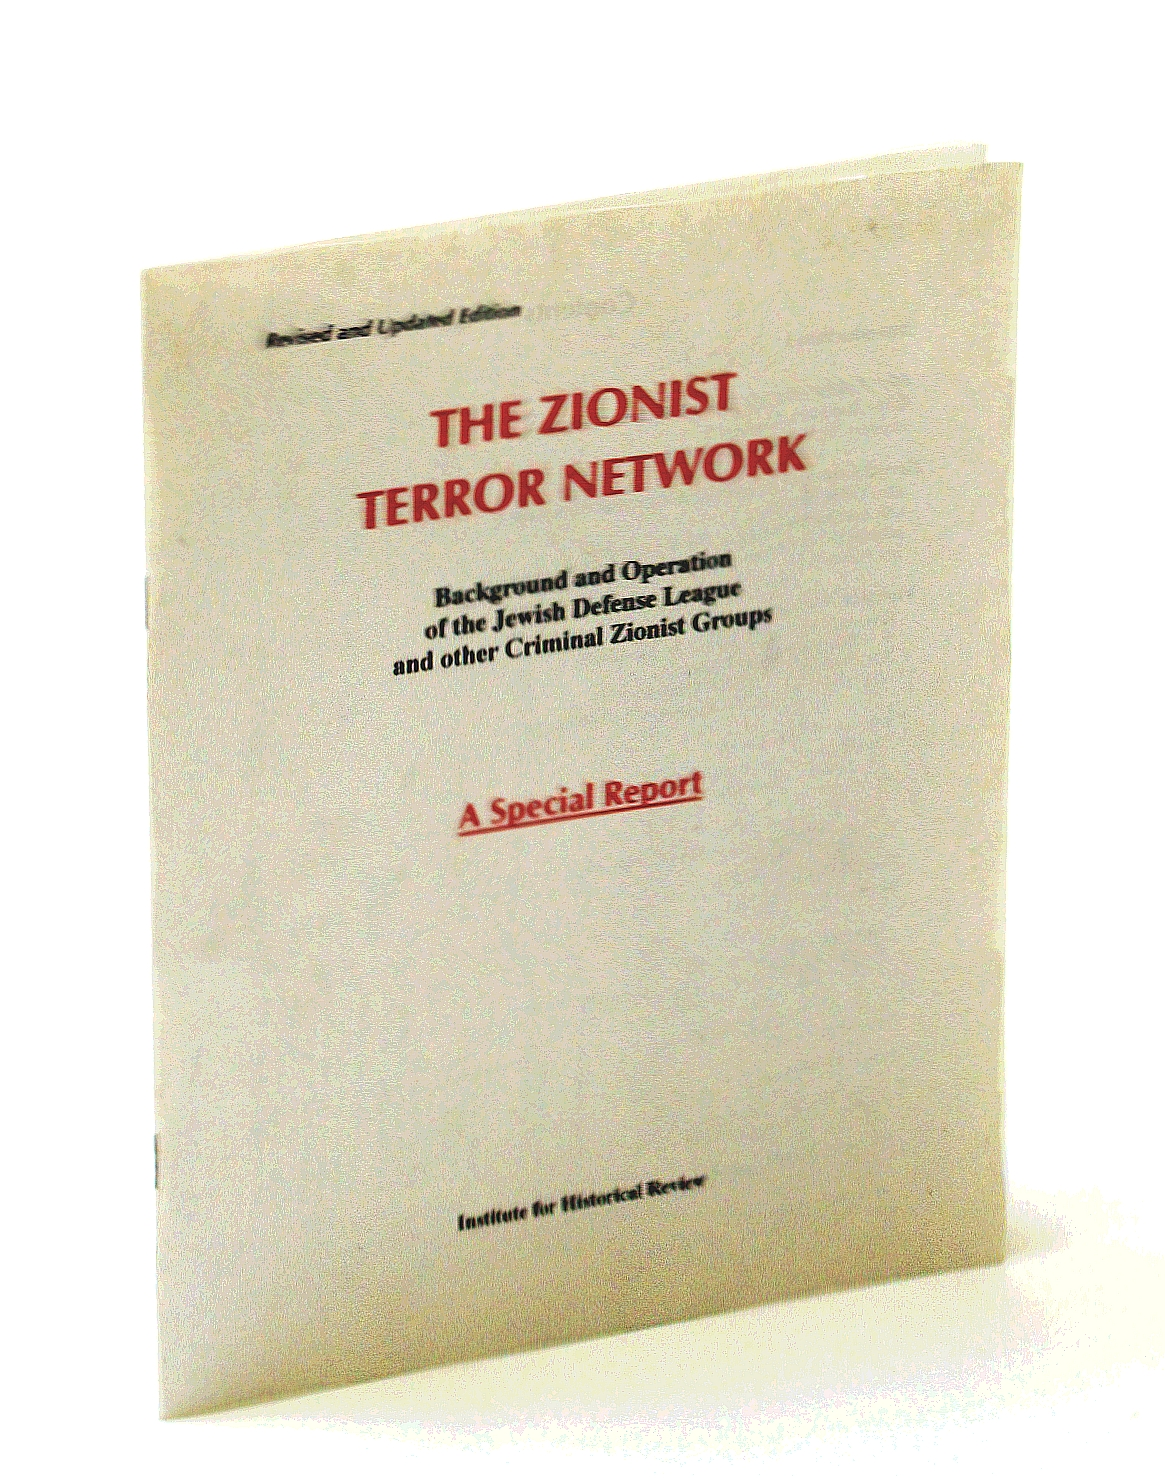 The Zionist Terror Network, Background and Operation: MARK WEBER, THE